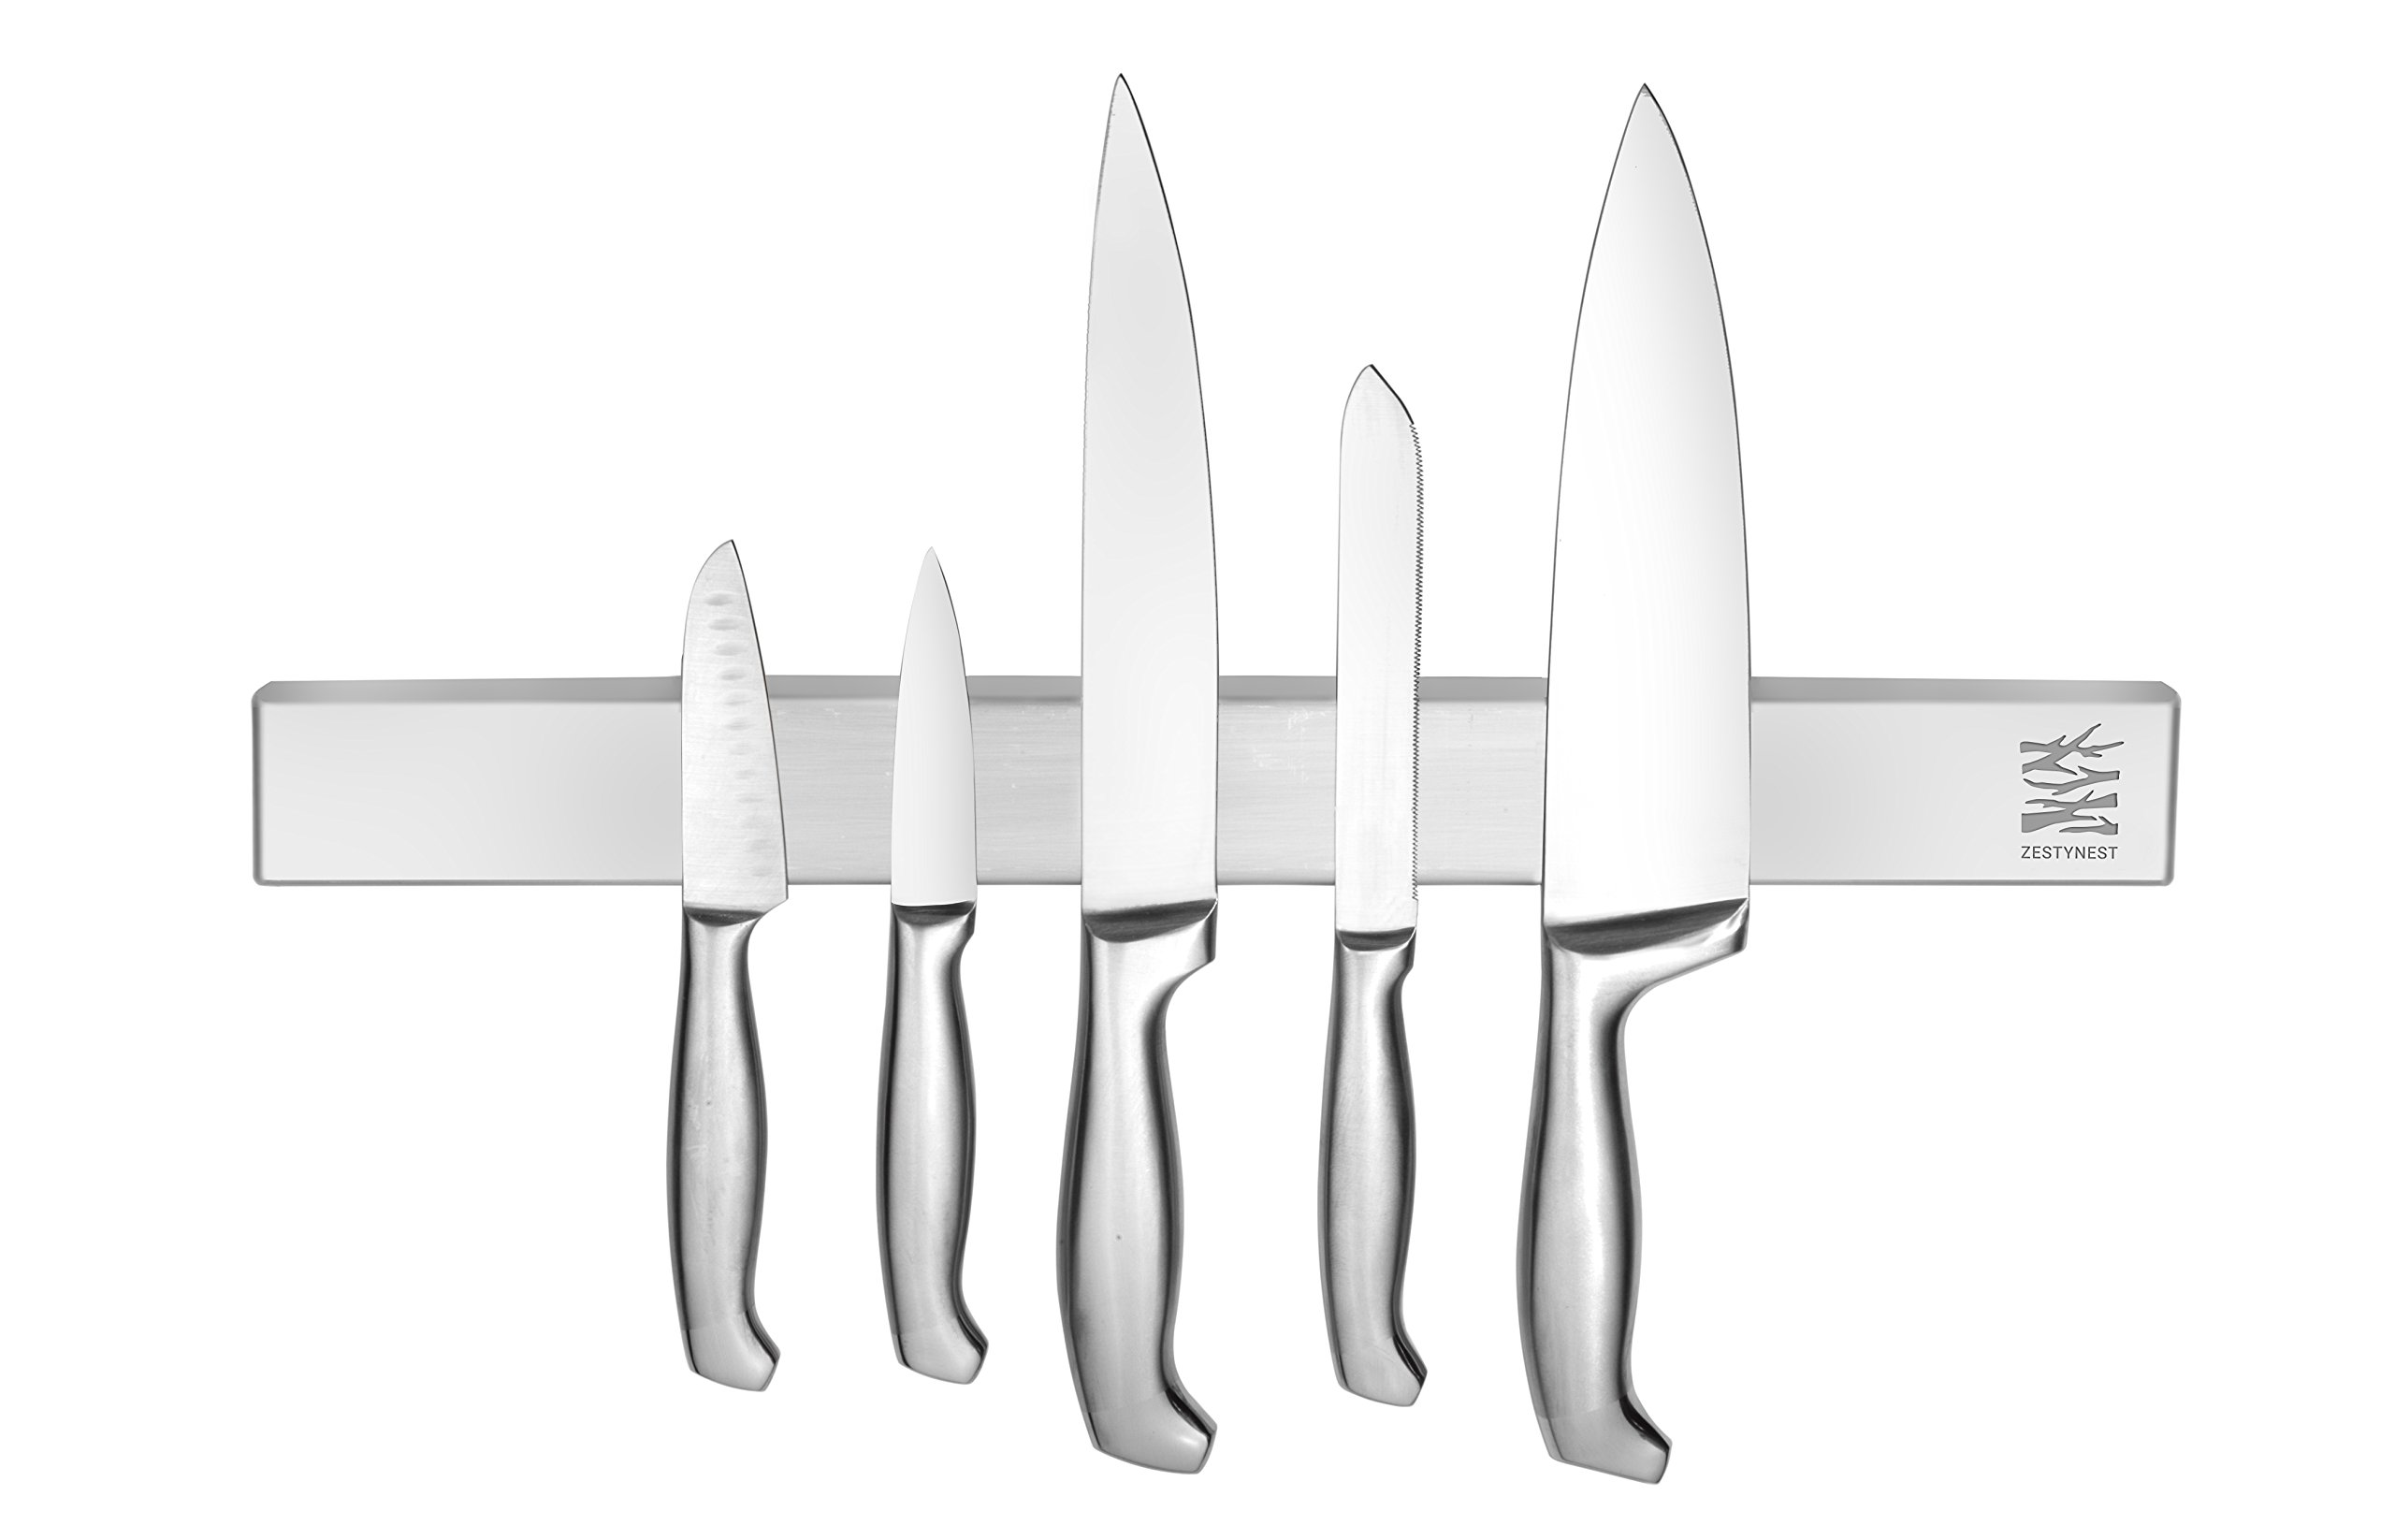 Magnet Block Knife Bar Holder - Strong Stainless Steel Magnetic Kitchen Strip Board For Holding and Organizing Knives on Wall by ZestyNest